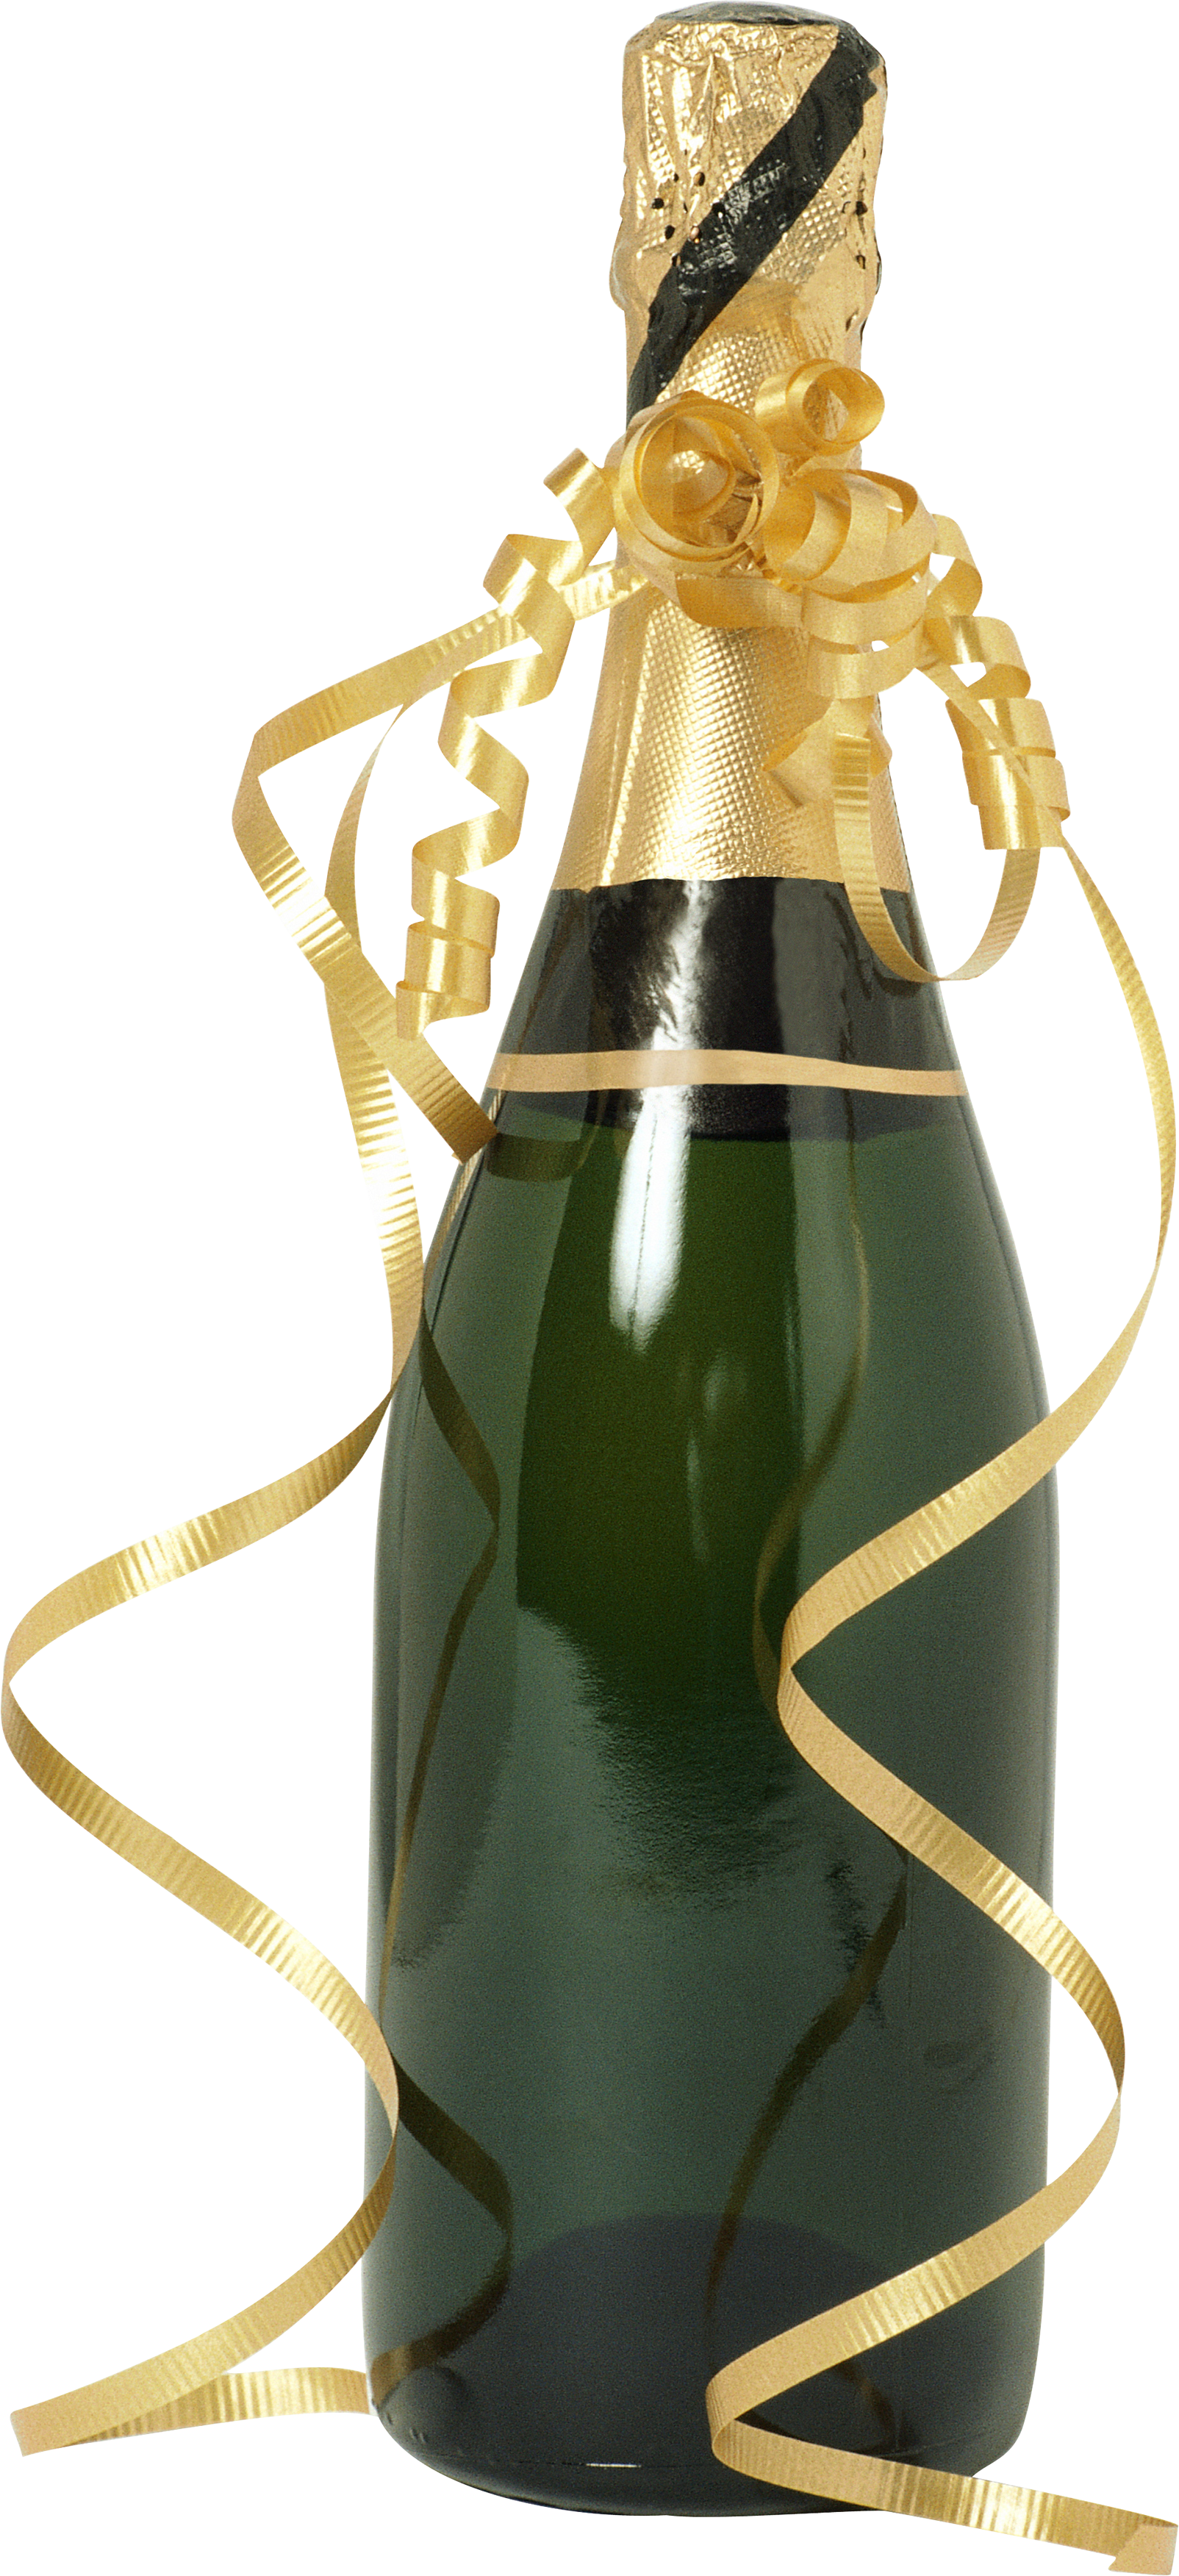 champagne hd big picture s906 Size:1604x3504px - Champagne HD PNG